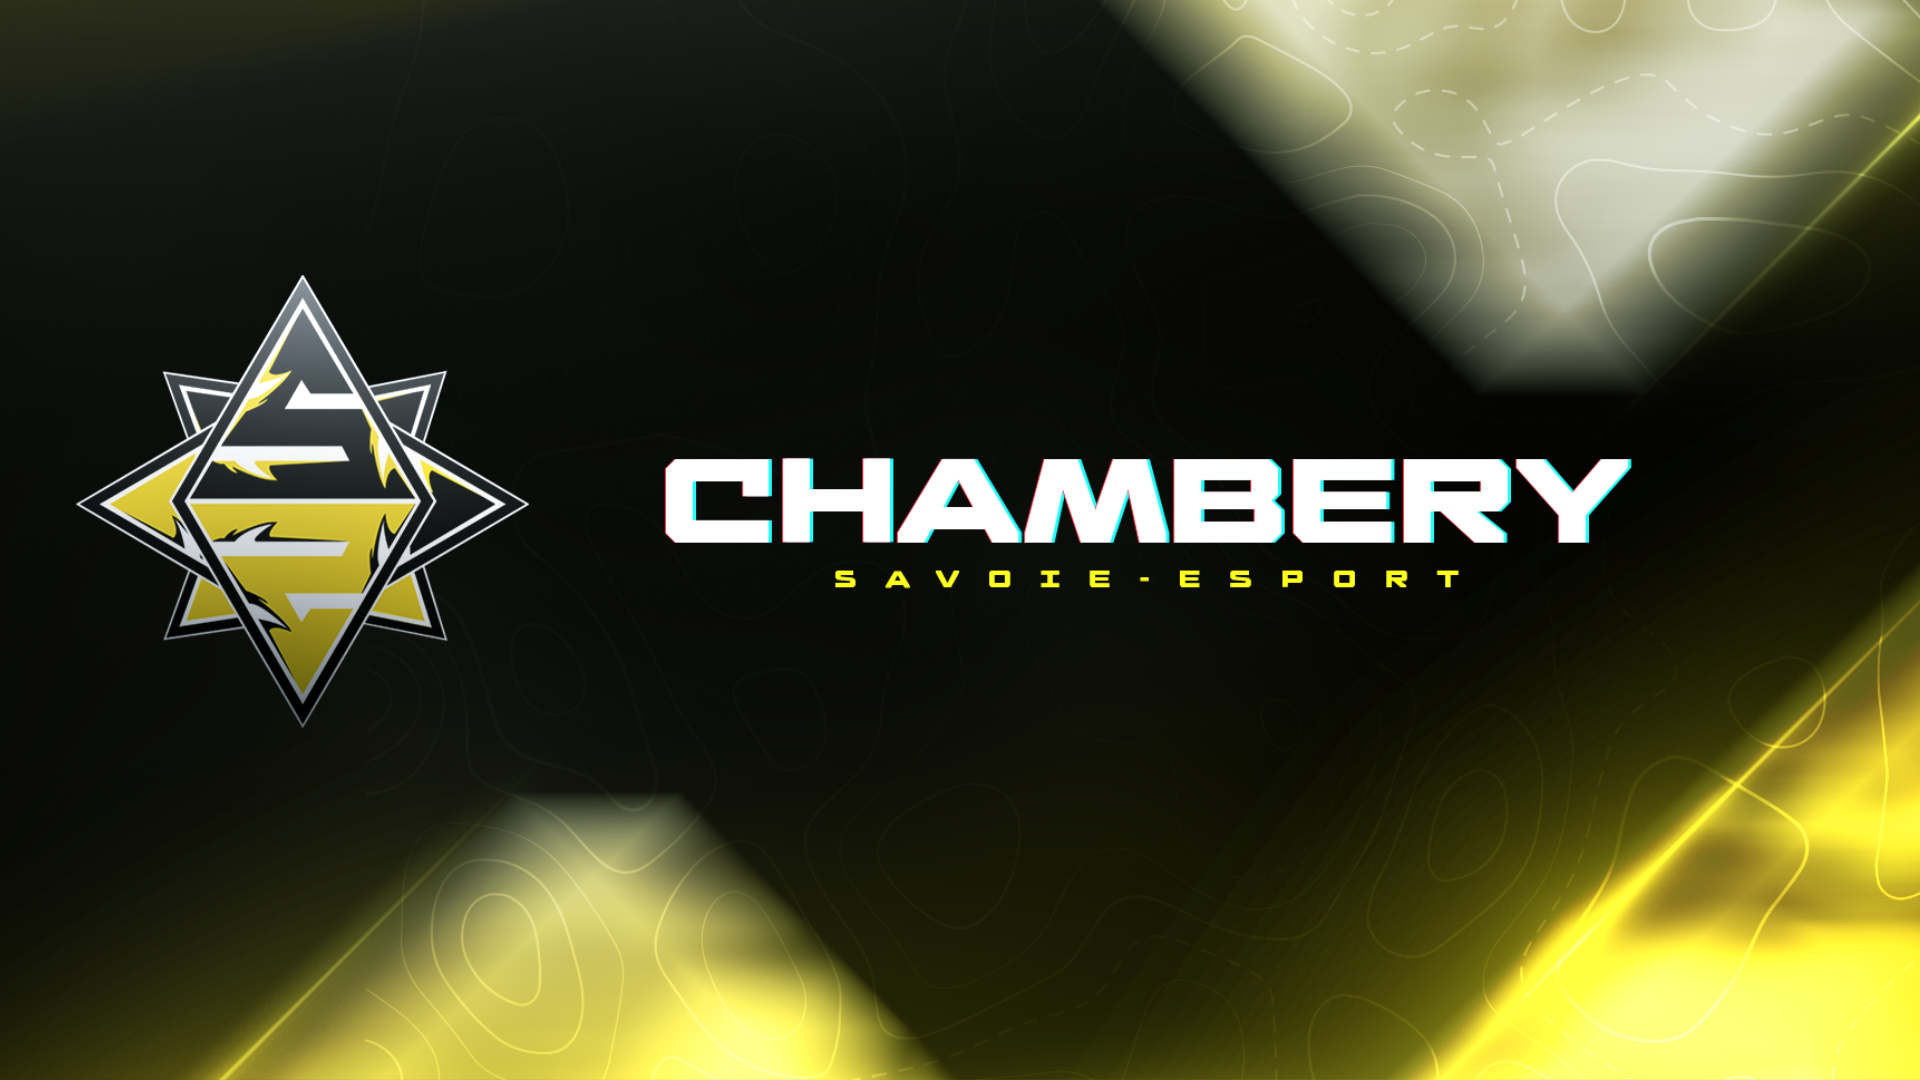 You are currently viewing Chambery Savoie Esports